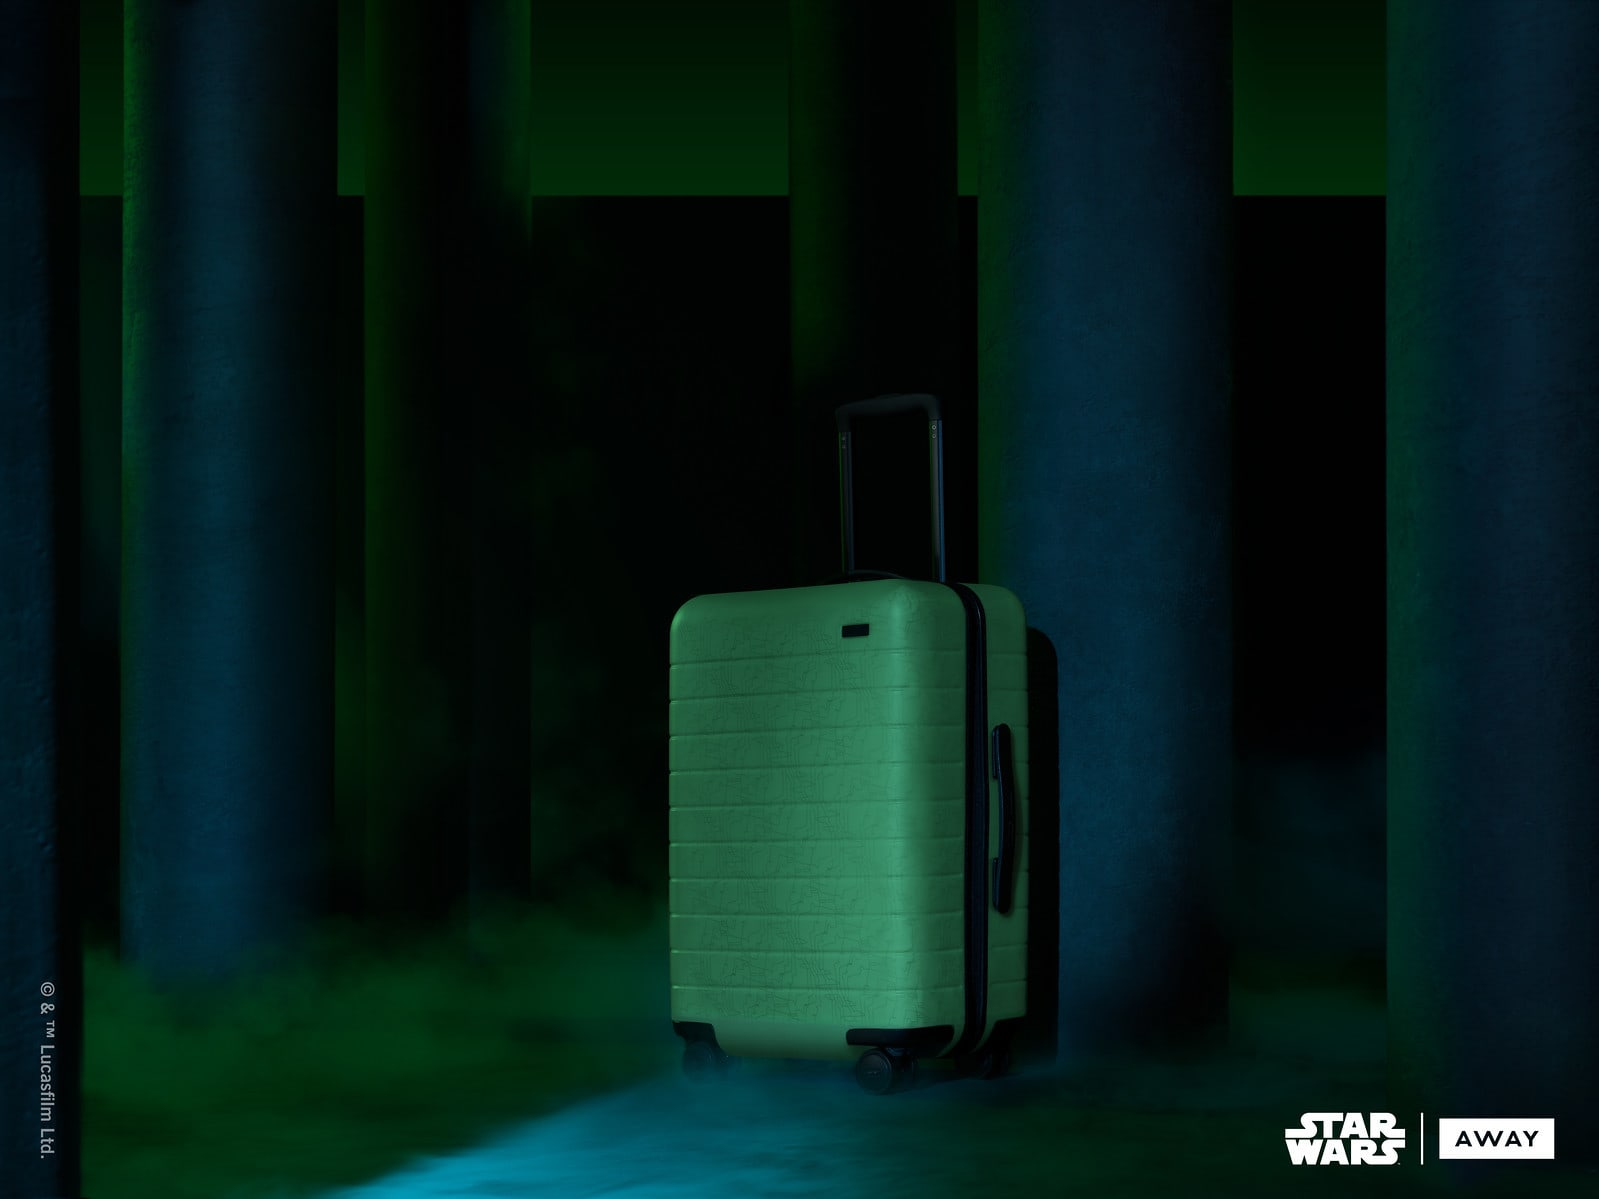 Green Away suitcase inspired from Endor from Star Wars collection